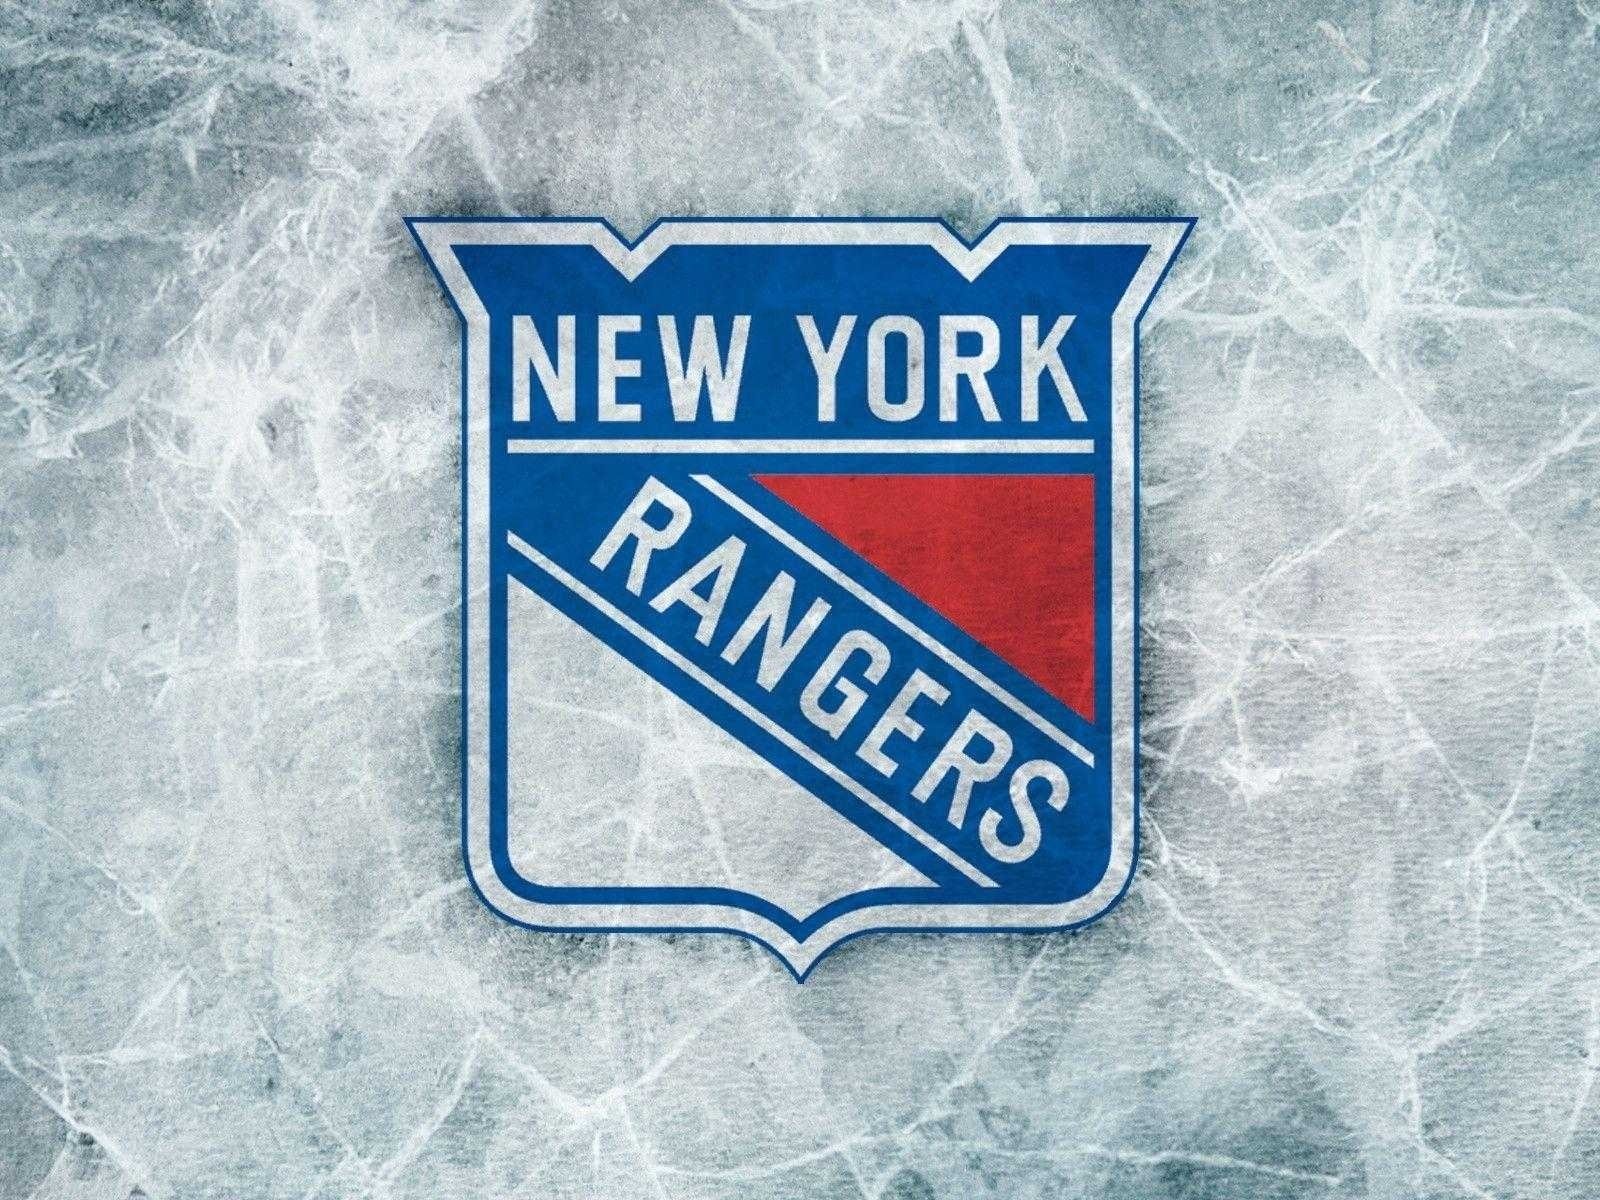 ny rangers wallpaper hd images new york for mobile phones | wallvie